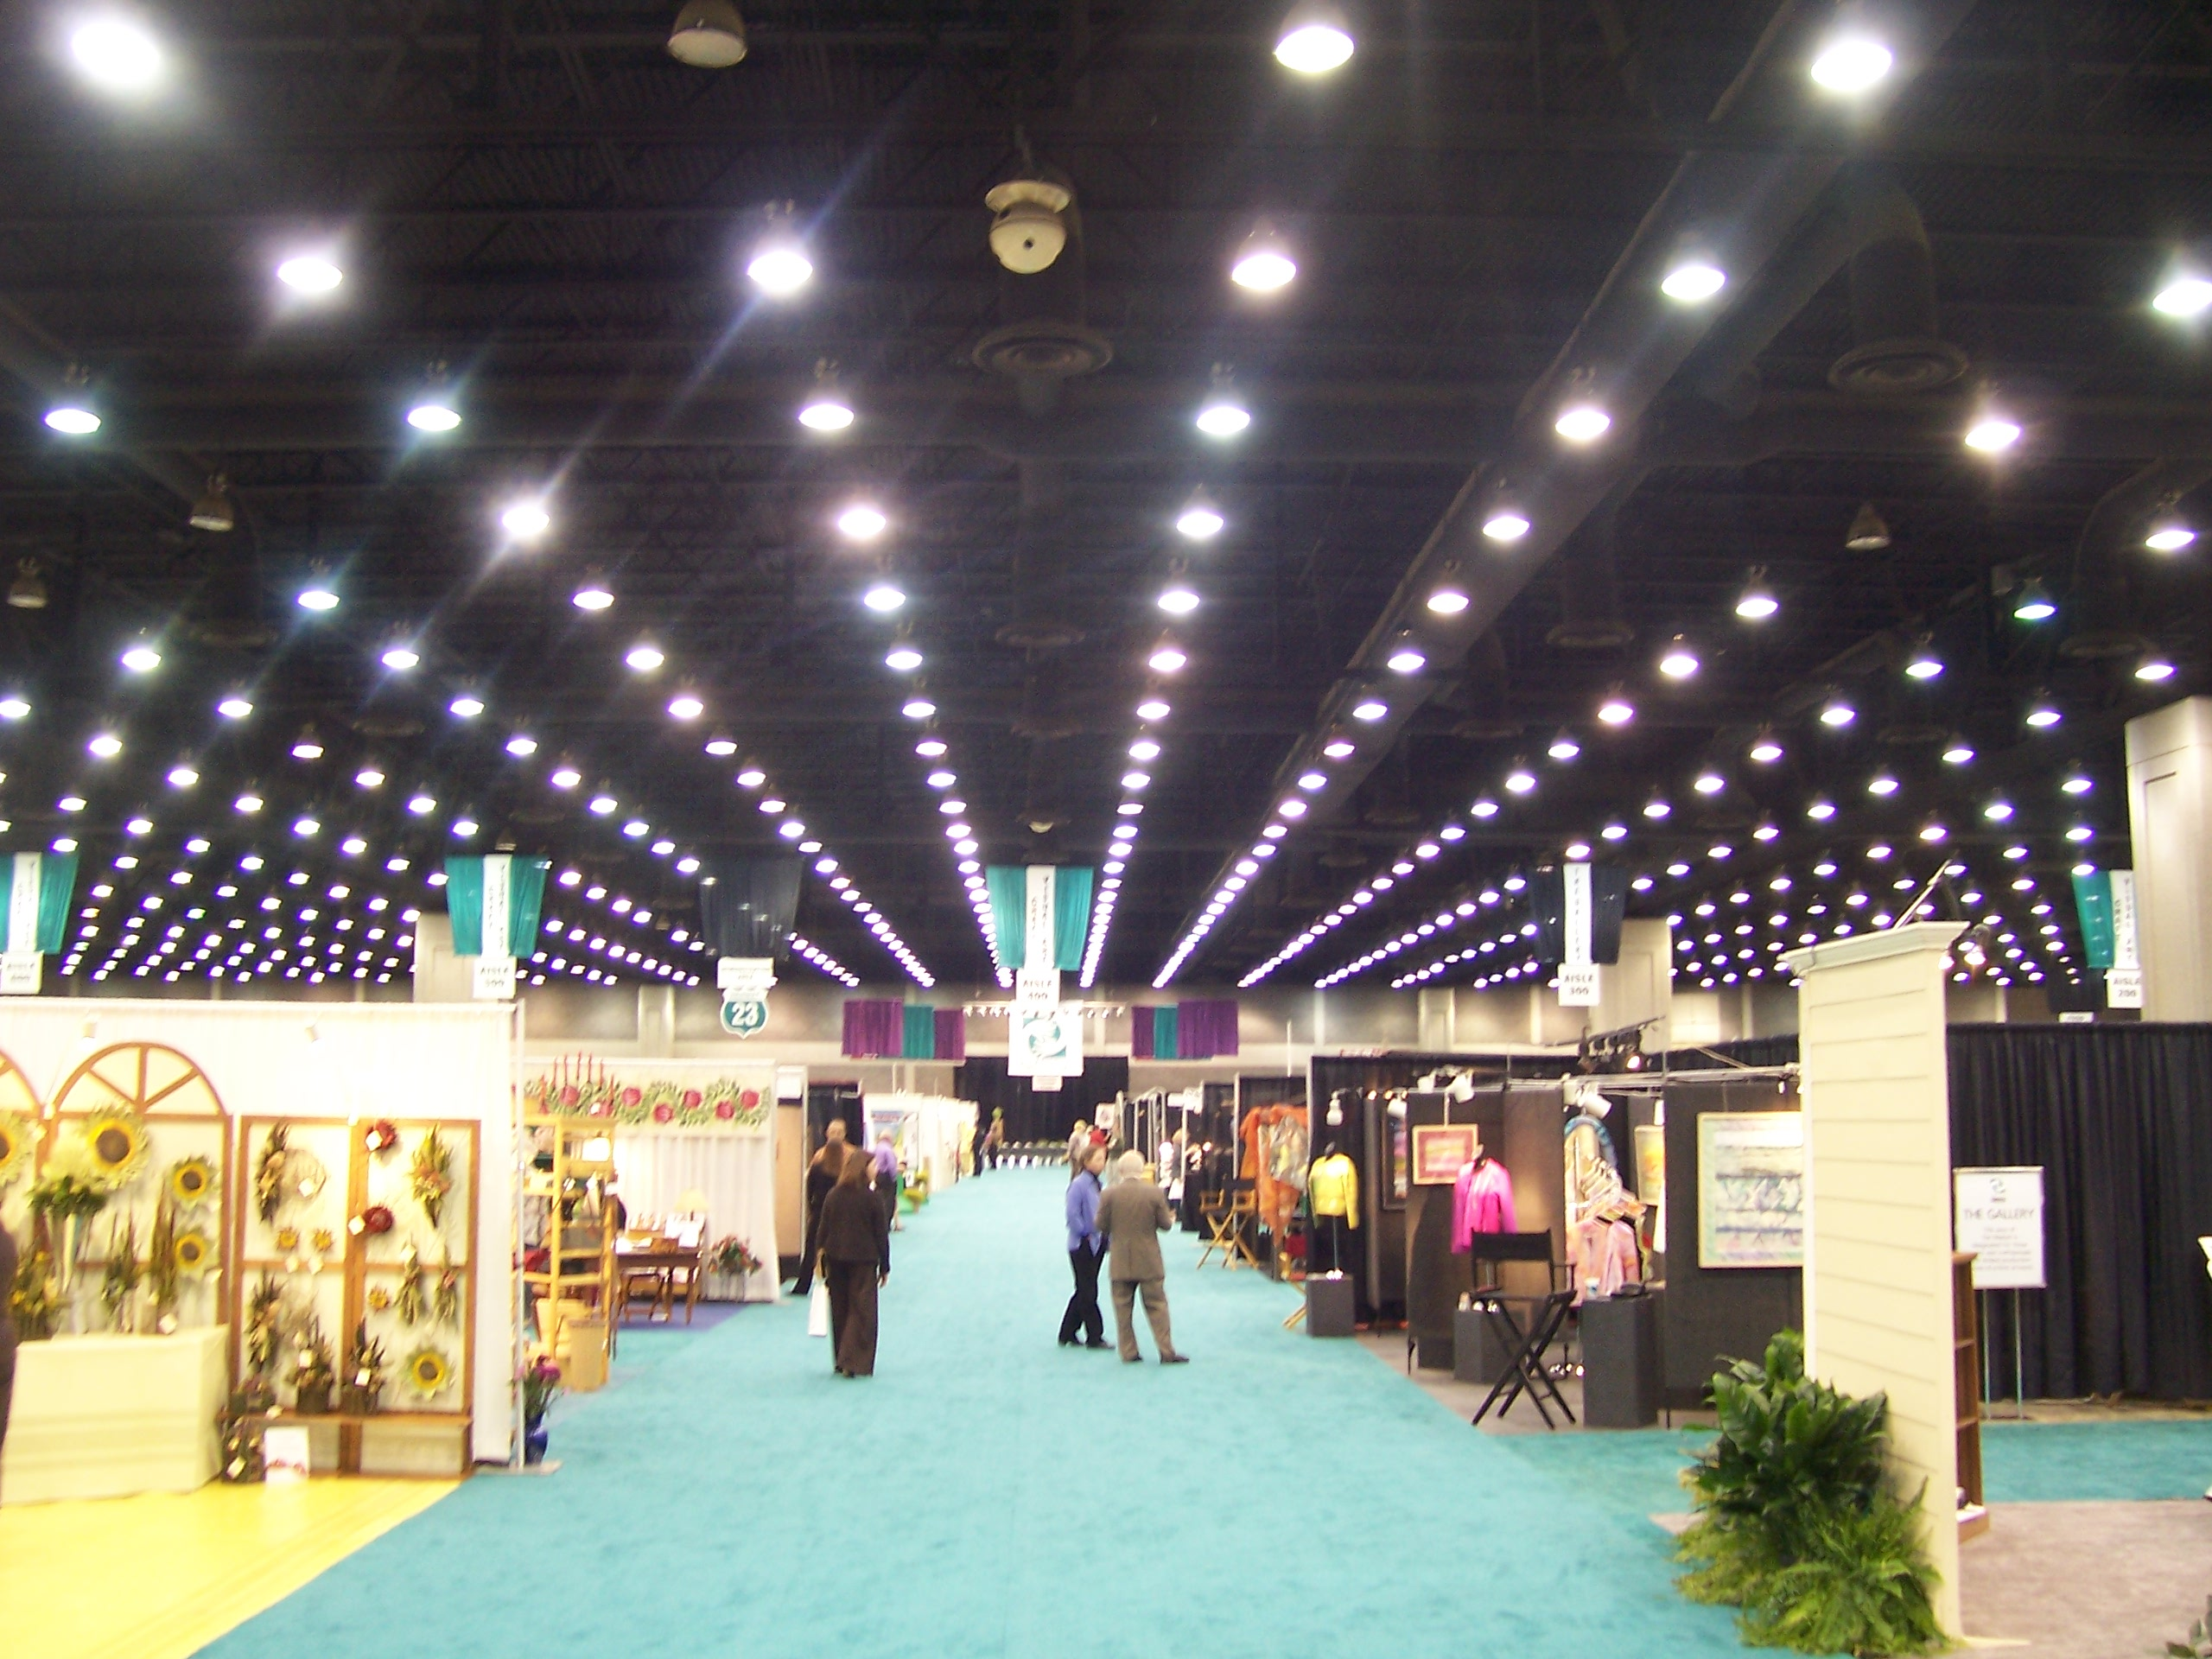 Trade Shows Expert Shares 3 Cutting-Edge New Technologies